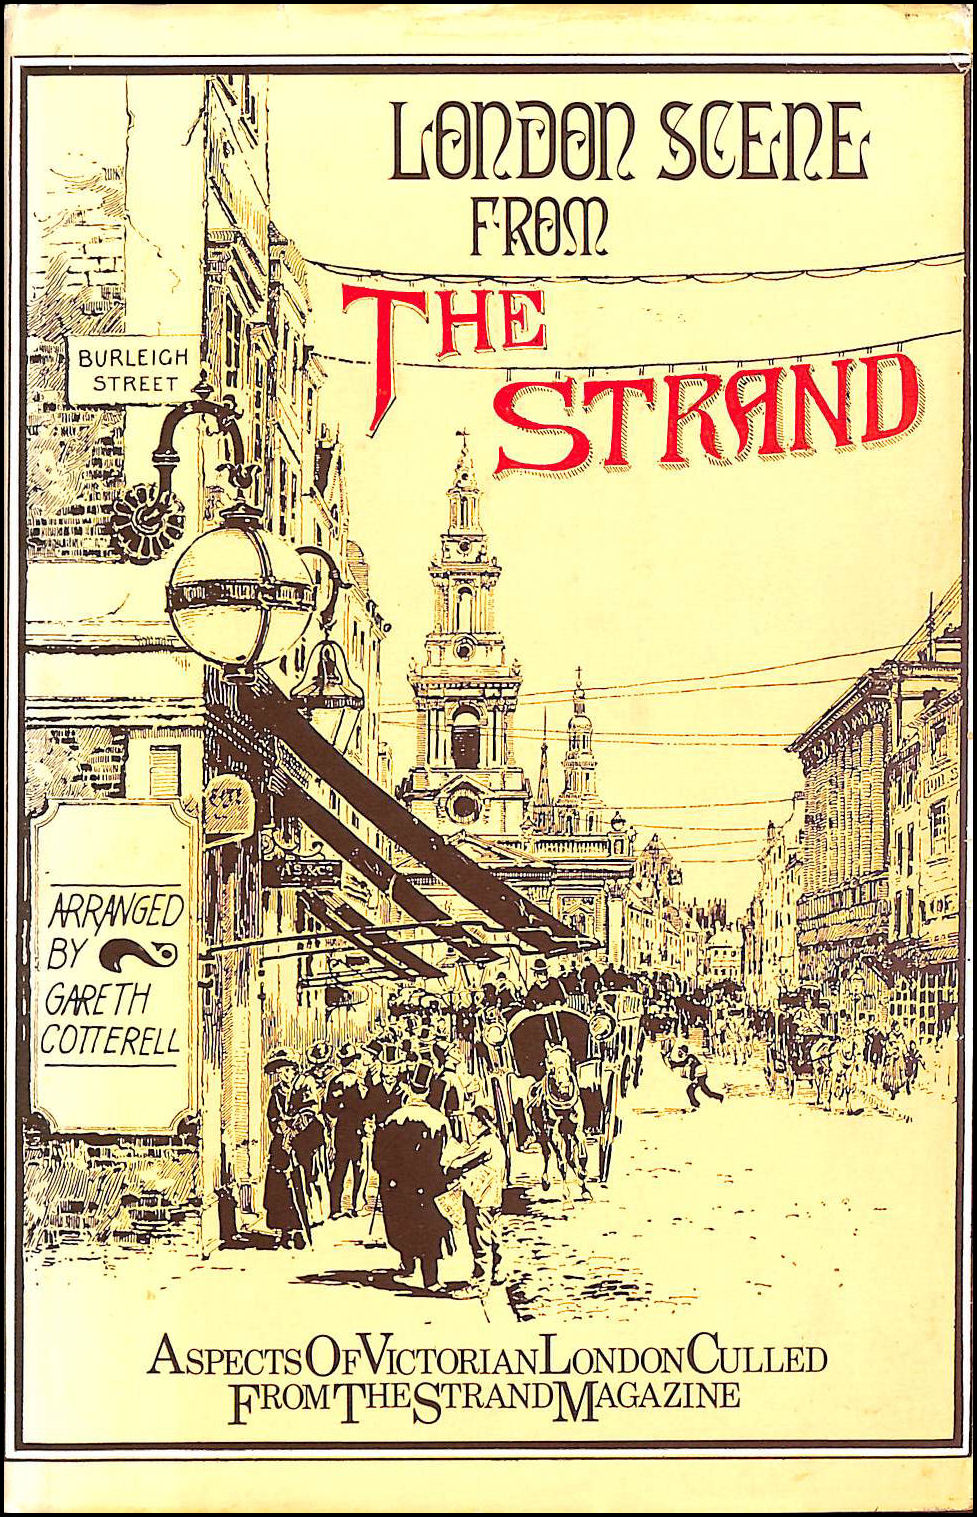 London Scene From The Strand: Aspects of Victorian London culled from the Strand Magazine, The Strand Magazine